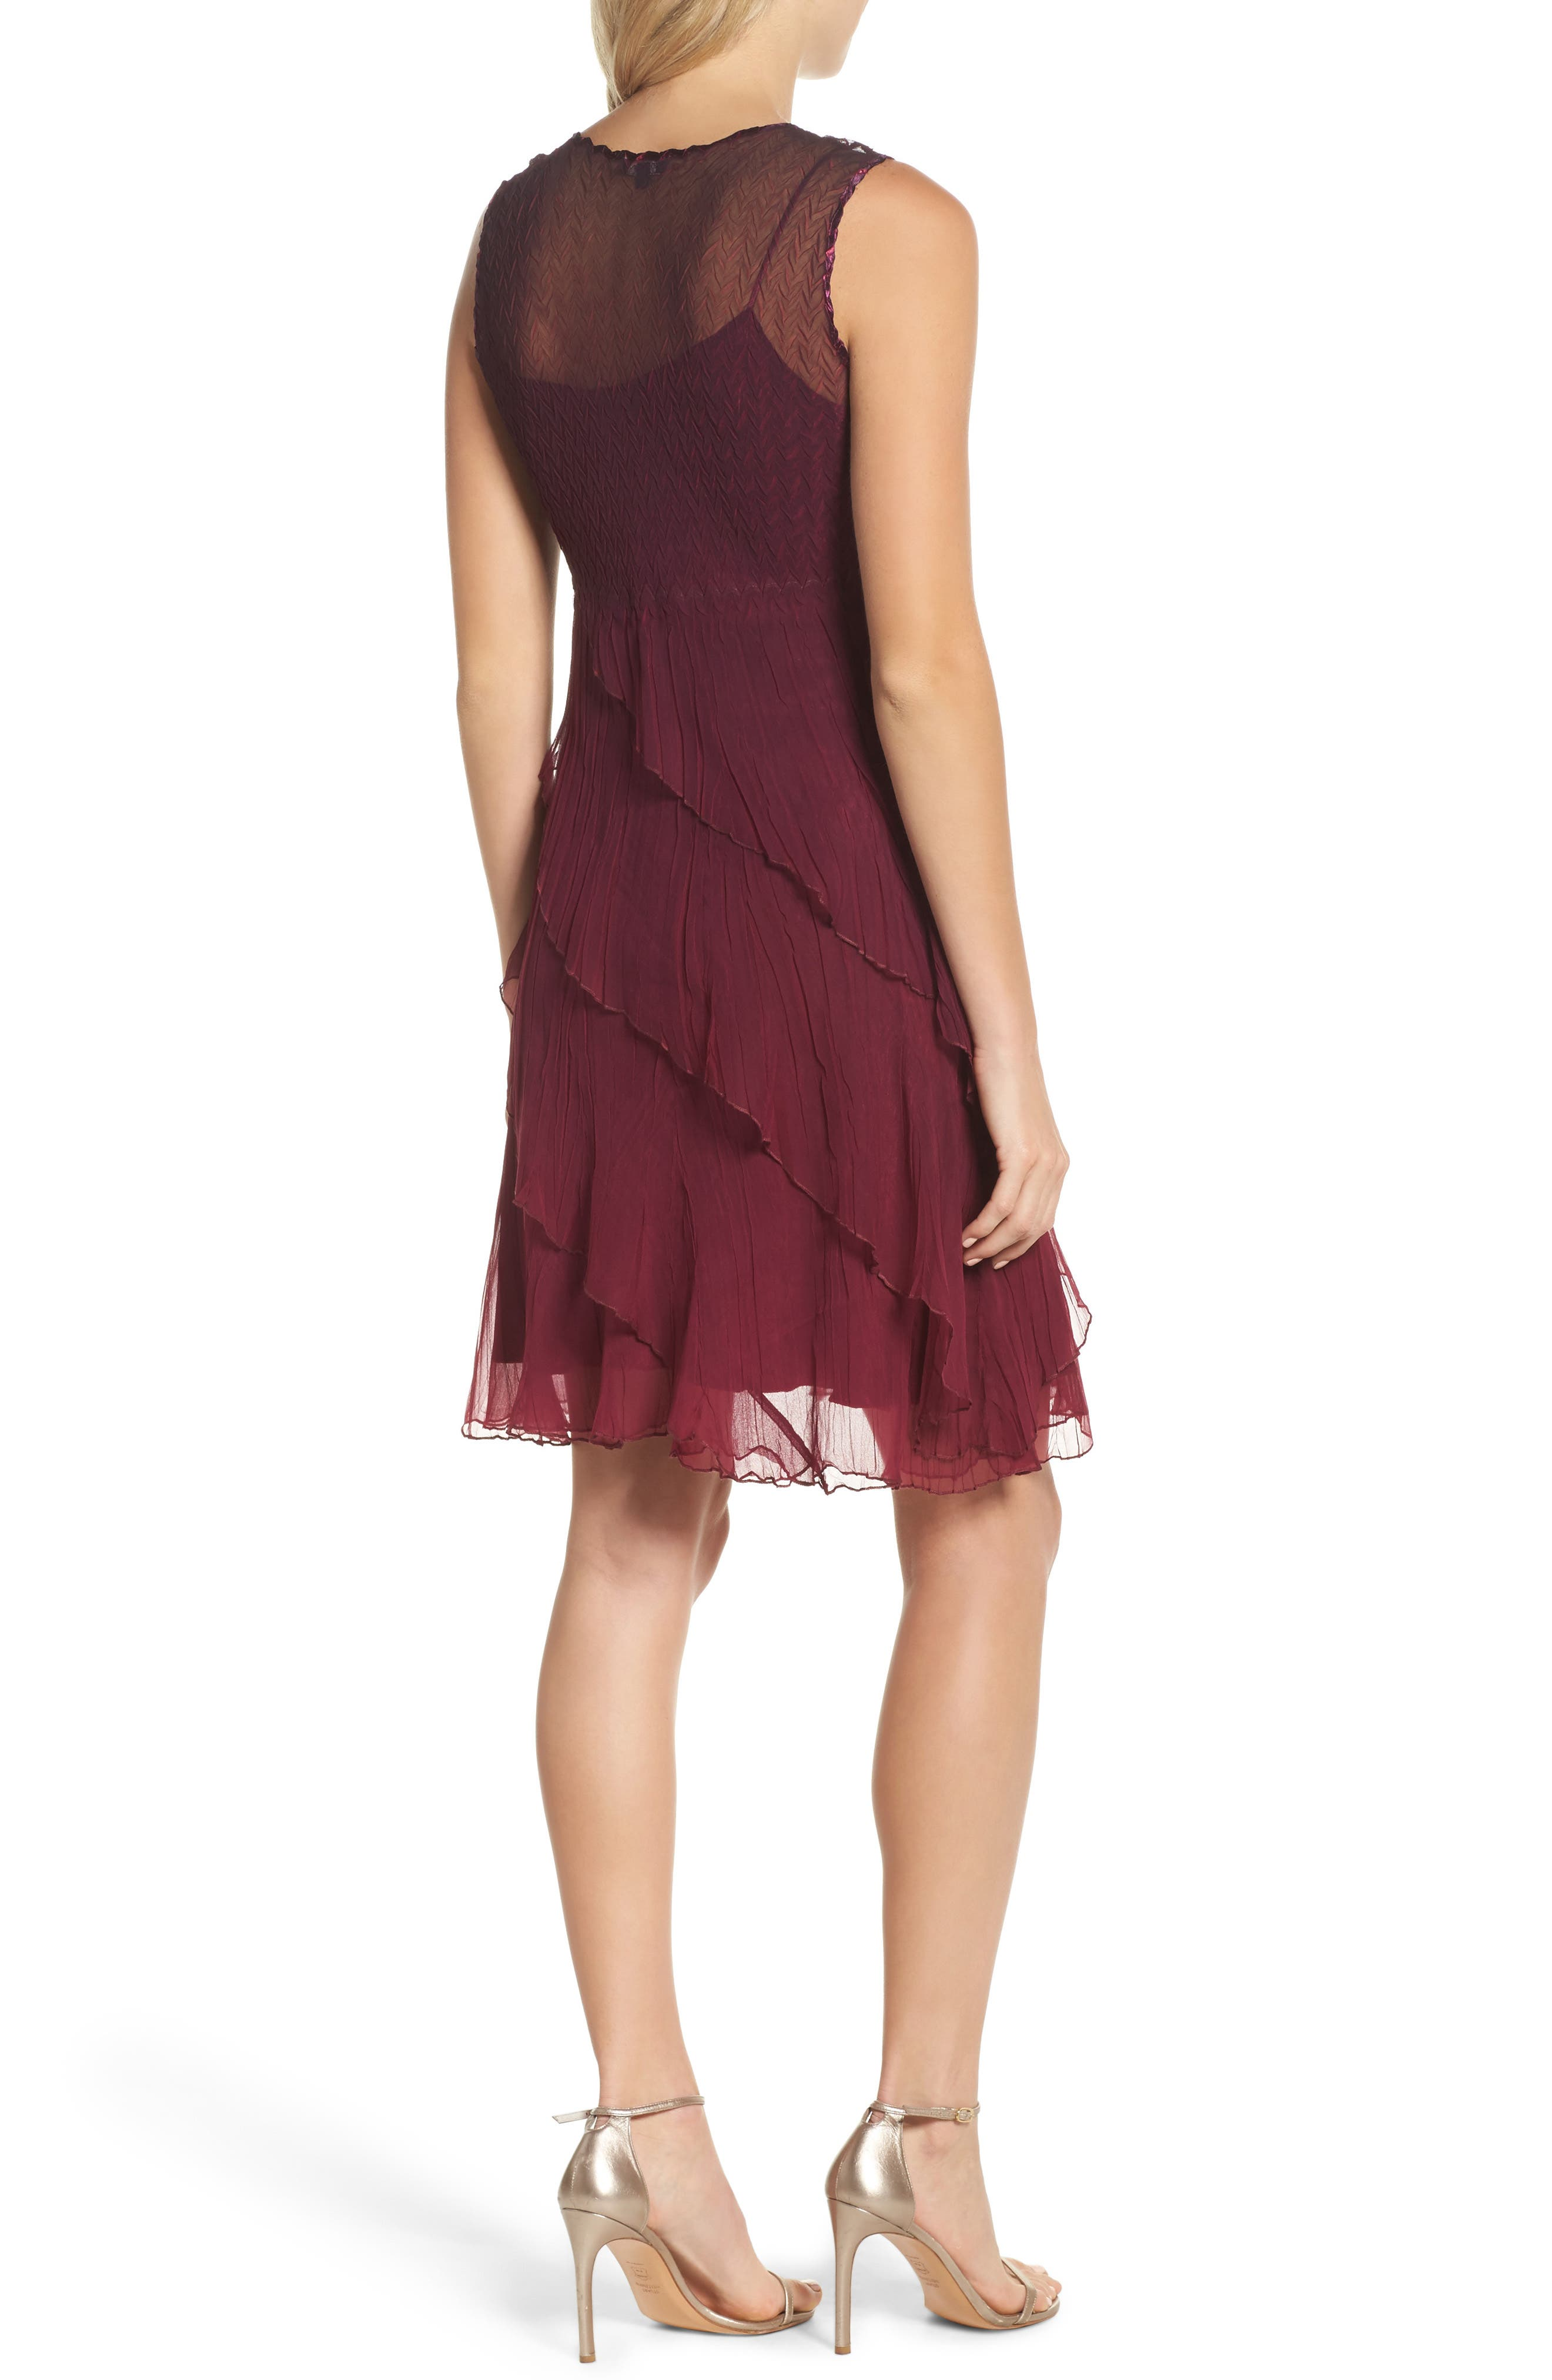 Tiered A-Line Dress with Shawl,                             Alternate thumbnail 3, color,                             Red Plum Night